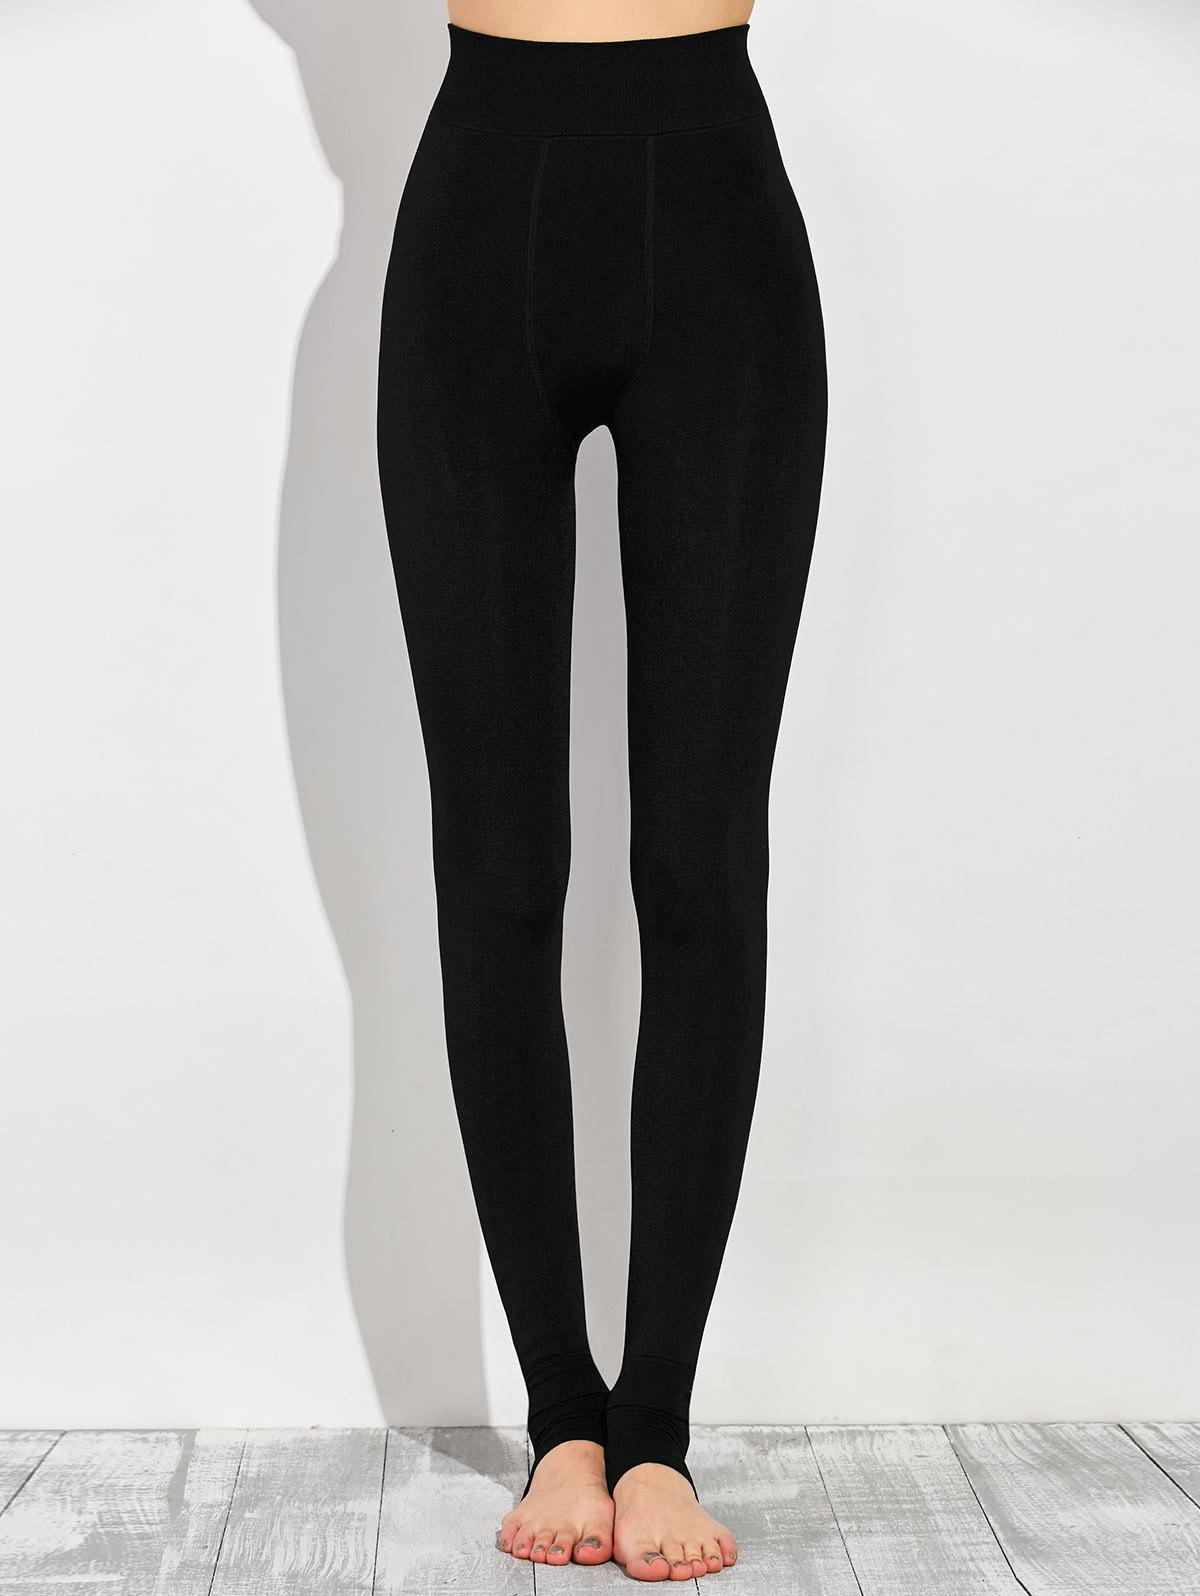 Stretchy Stirrup LeggingsWOMEN<br><br>Size: ONE SIZE; Color: BLACK; Style: Fashion; Material: Polyester; Waist Type: High; Pattern Type: Solid; Elasticity: Elastic; Weight: 0.400kg; Package Contents: 1 x Leggings;